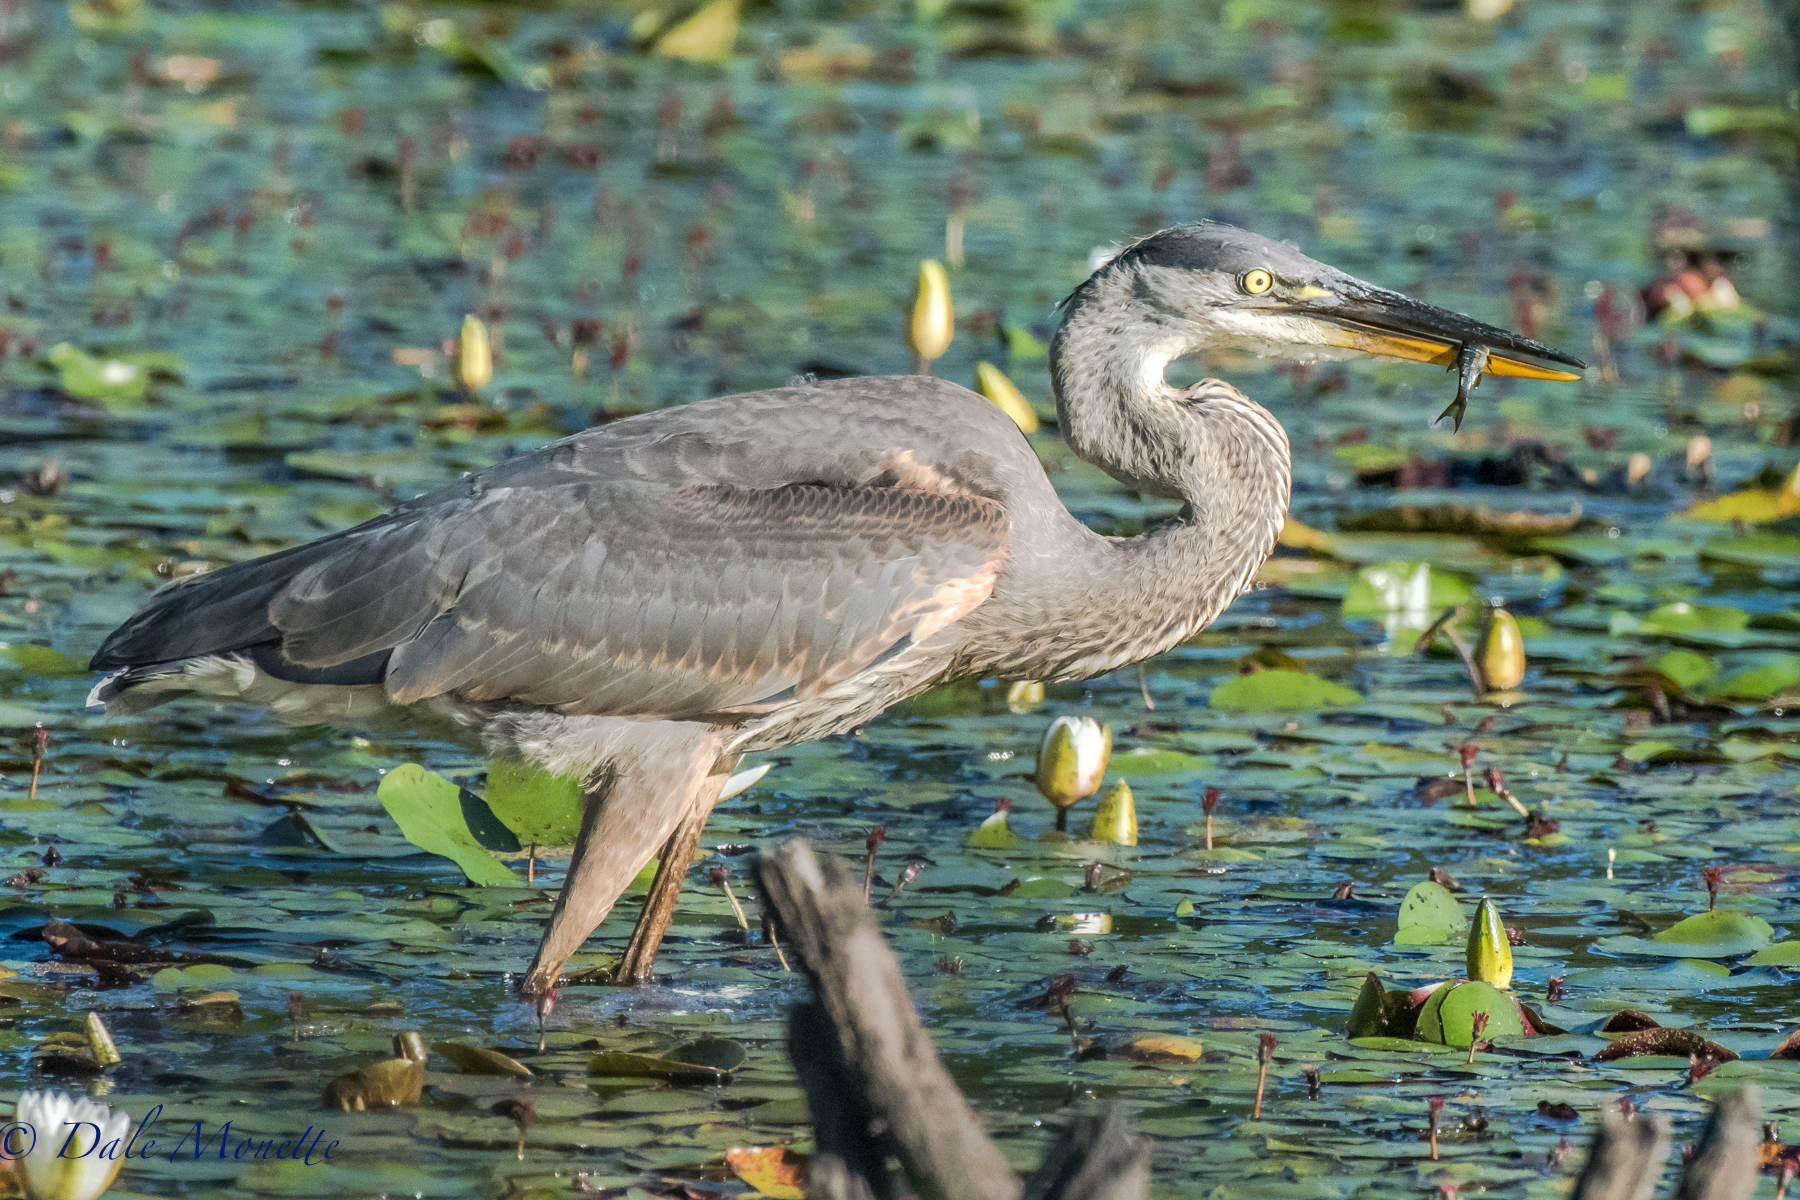 Young of the year great blue herons are leaving their nests and starting to show up in the local swamps, ponds and waterways. Here is a young one I found fishing today in Petersham.  7/19/16.